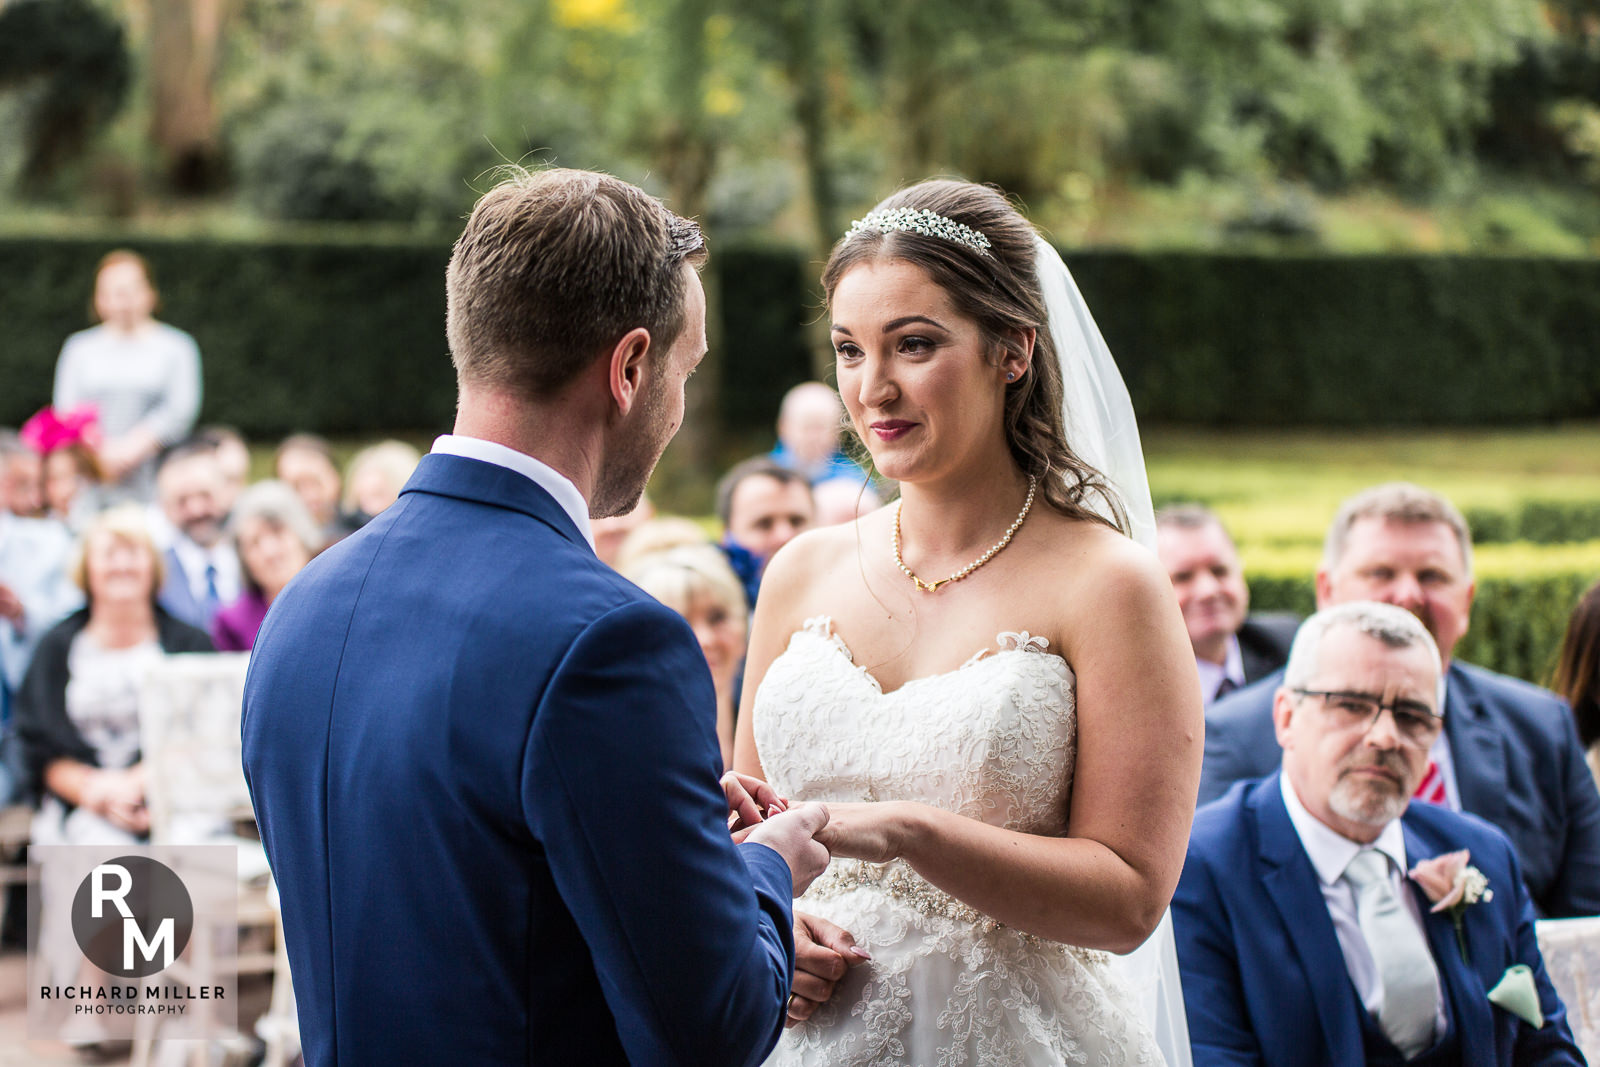 P R 16 - Pete & Roxy's Soughton Hall Outdoor Wedding